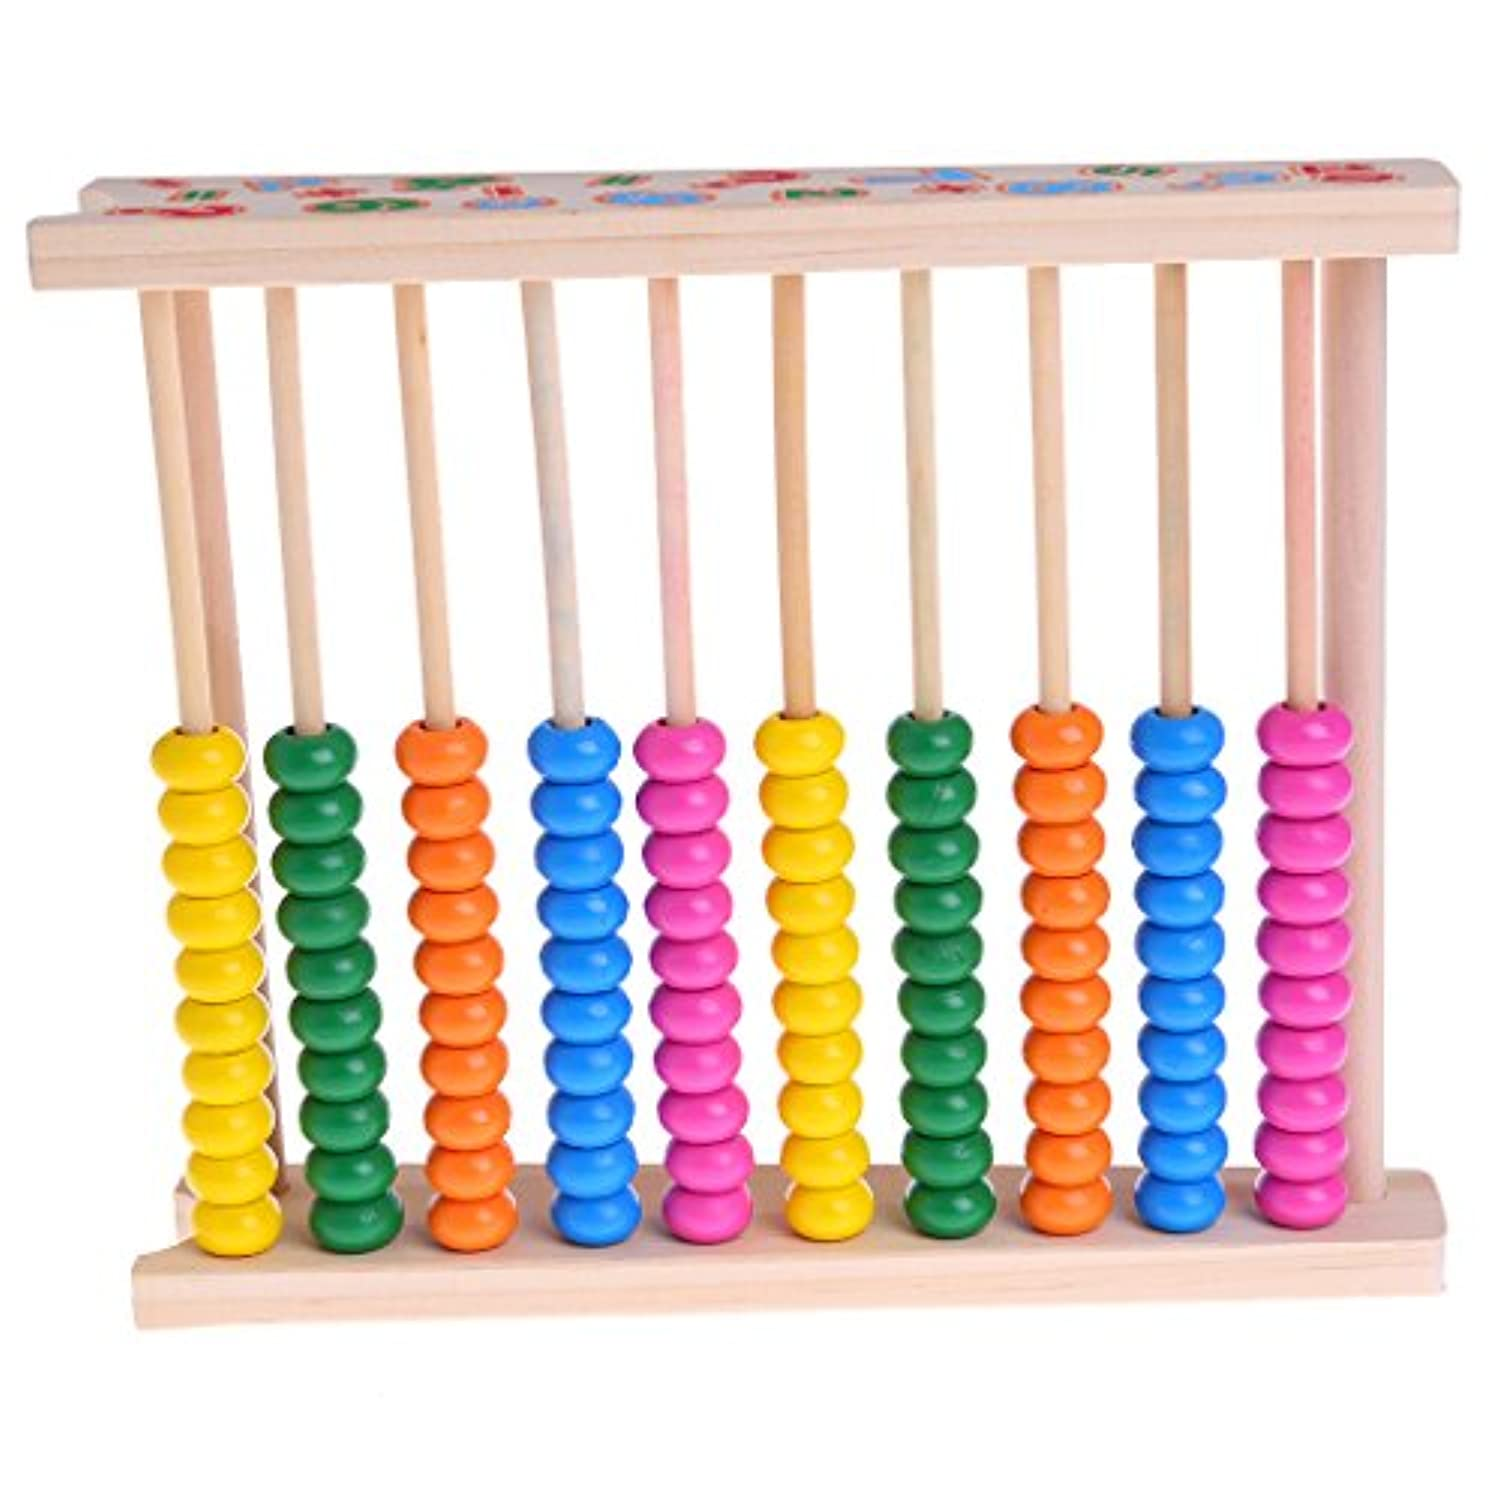 BCHZ Kids Colourful Wooden Abacus Teaching Early Educational Toy ,Math Learning toy